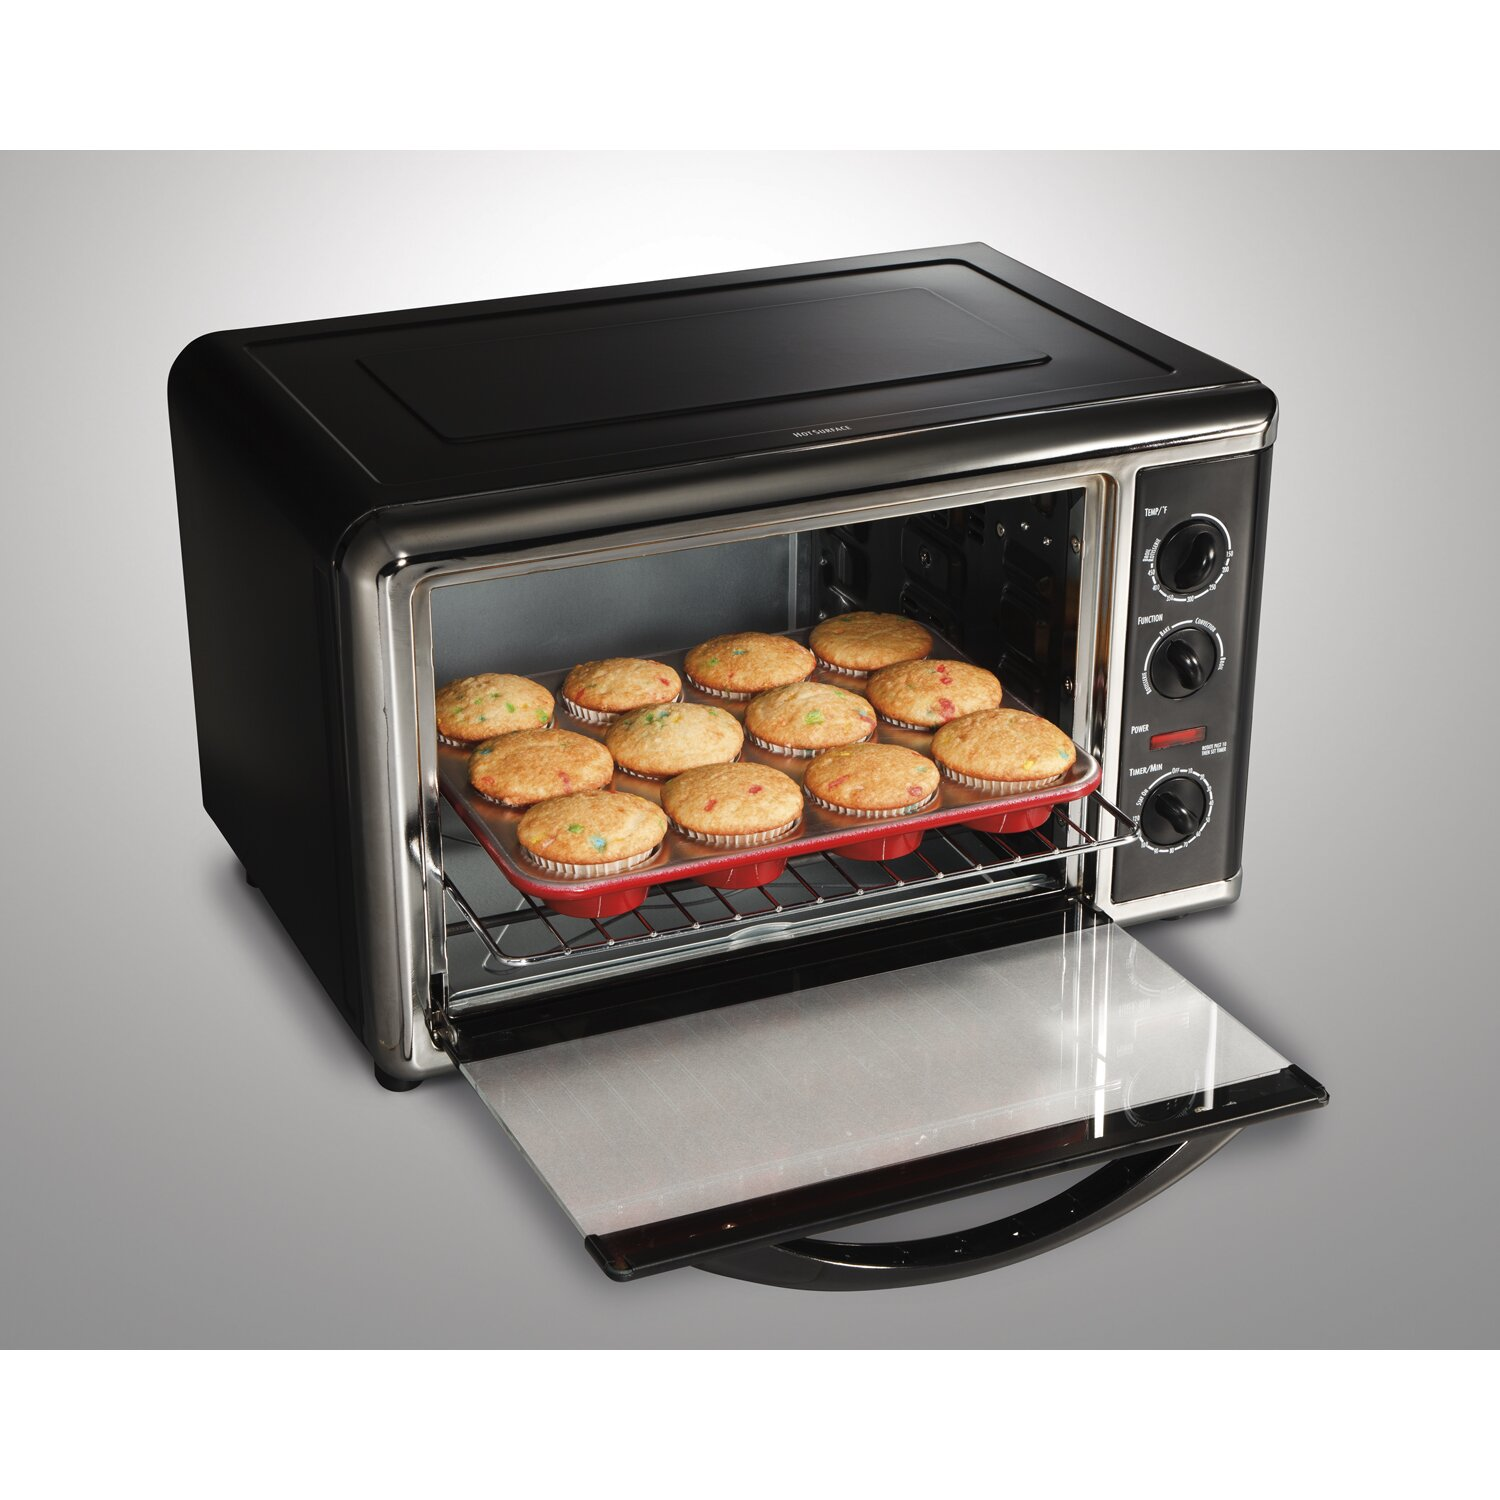 Countertop Convection Oven Chicken : Hamilton Beach Countertop Convection & Rotisserie Oven & Reviews ...